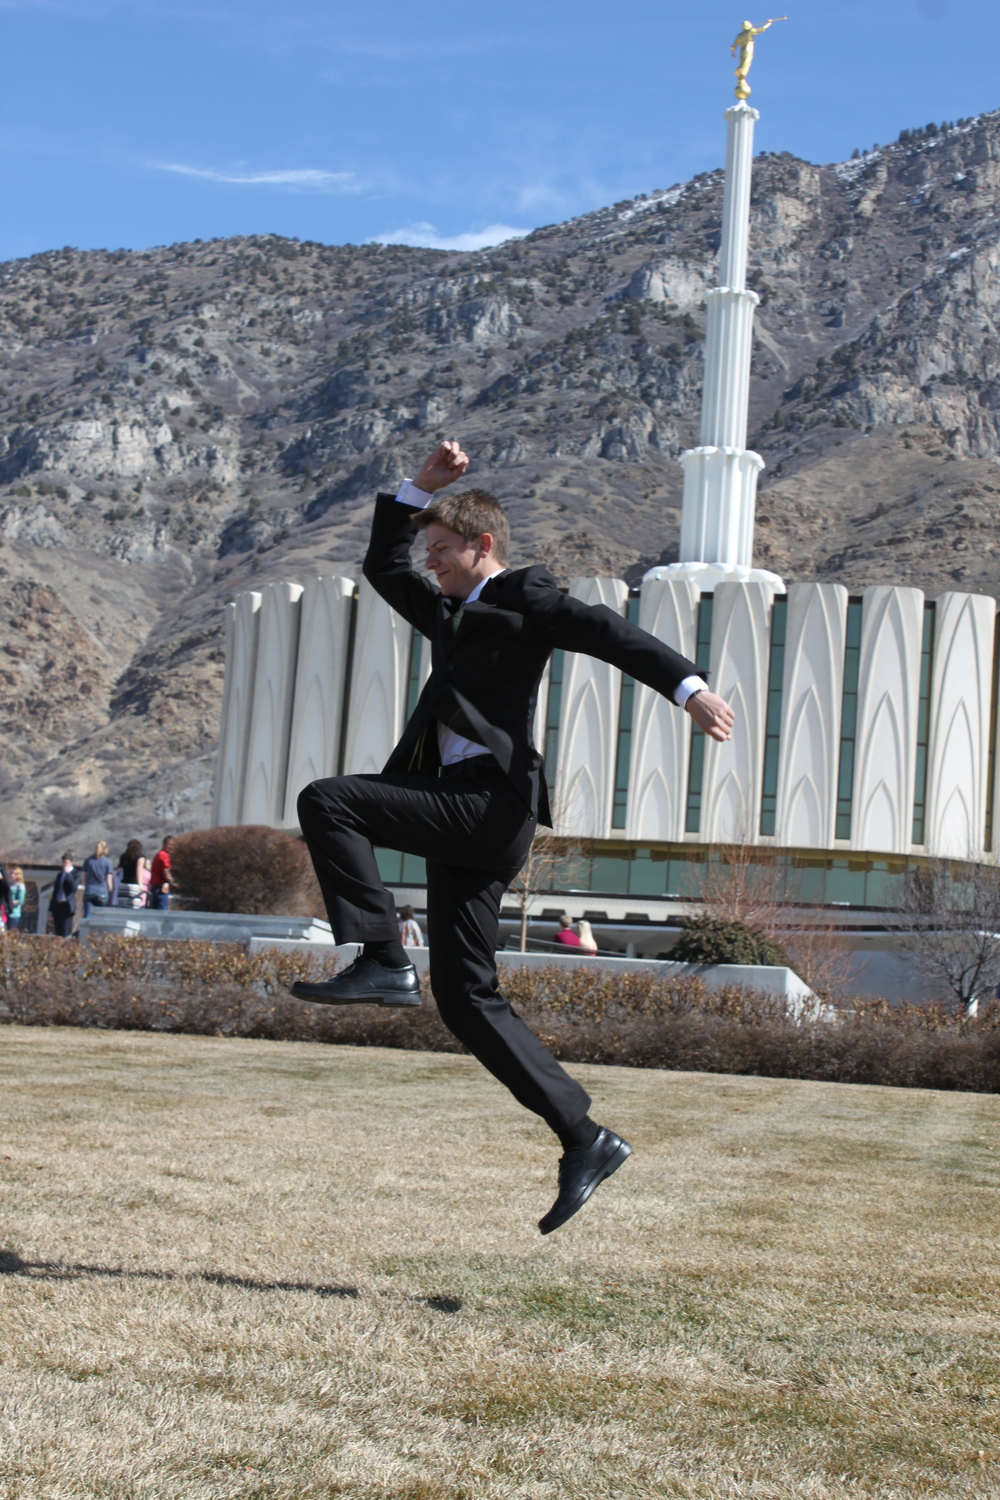 Elder Matthew Blanding jumping for joy!